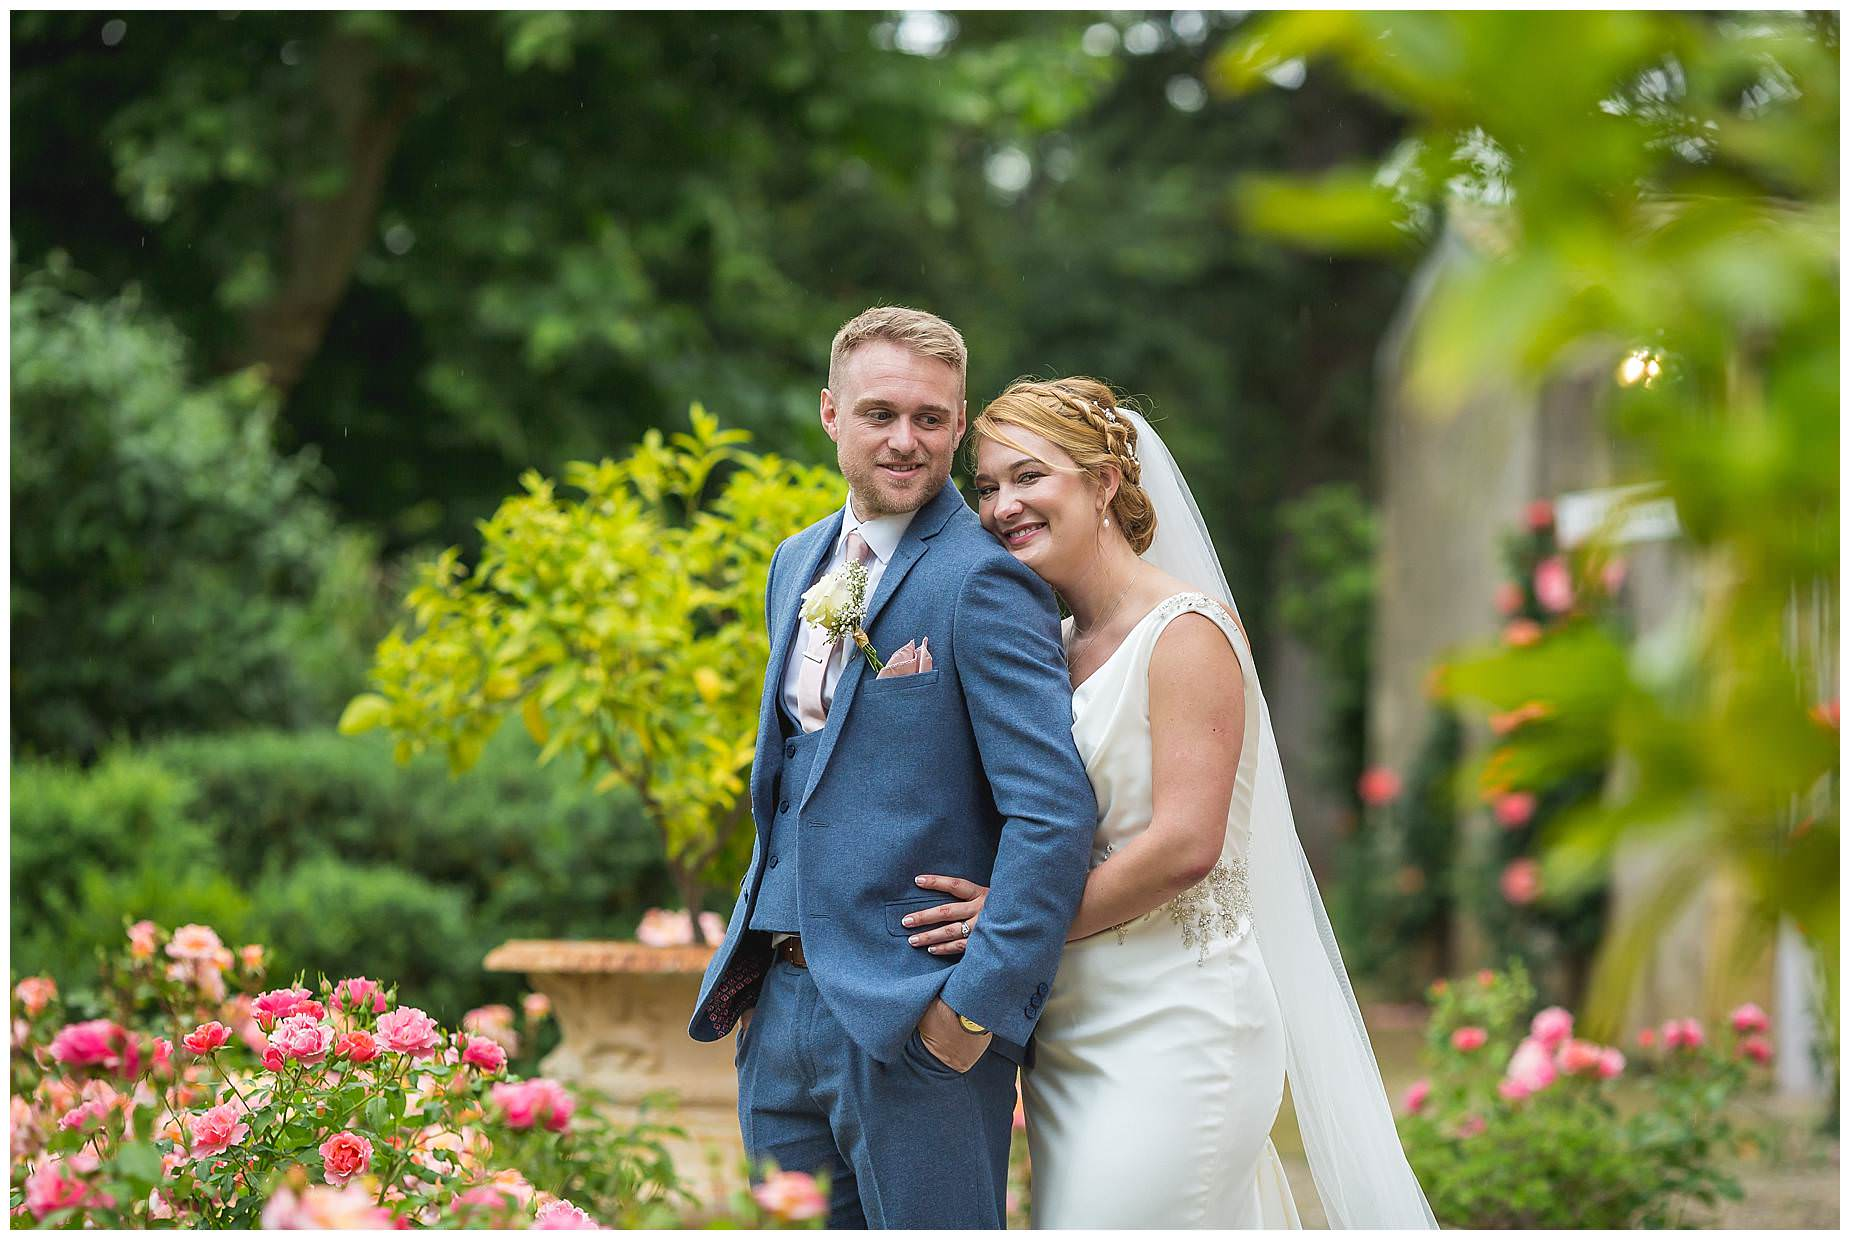 English Speaking Wedding Photographer Pezanas